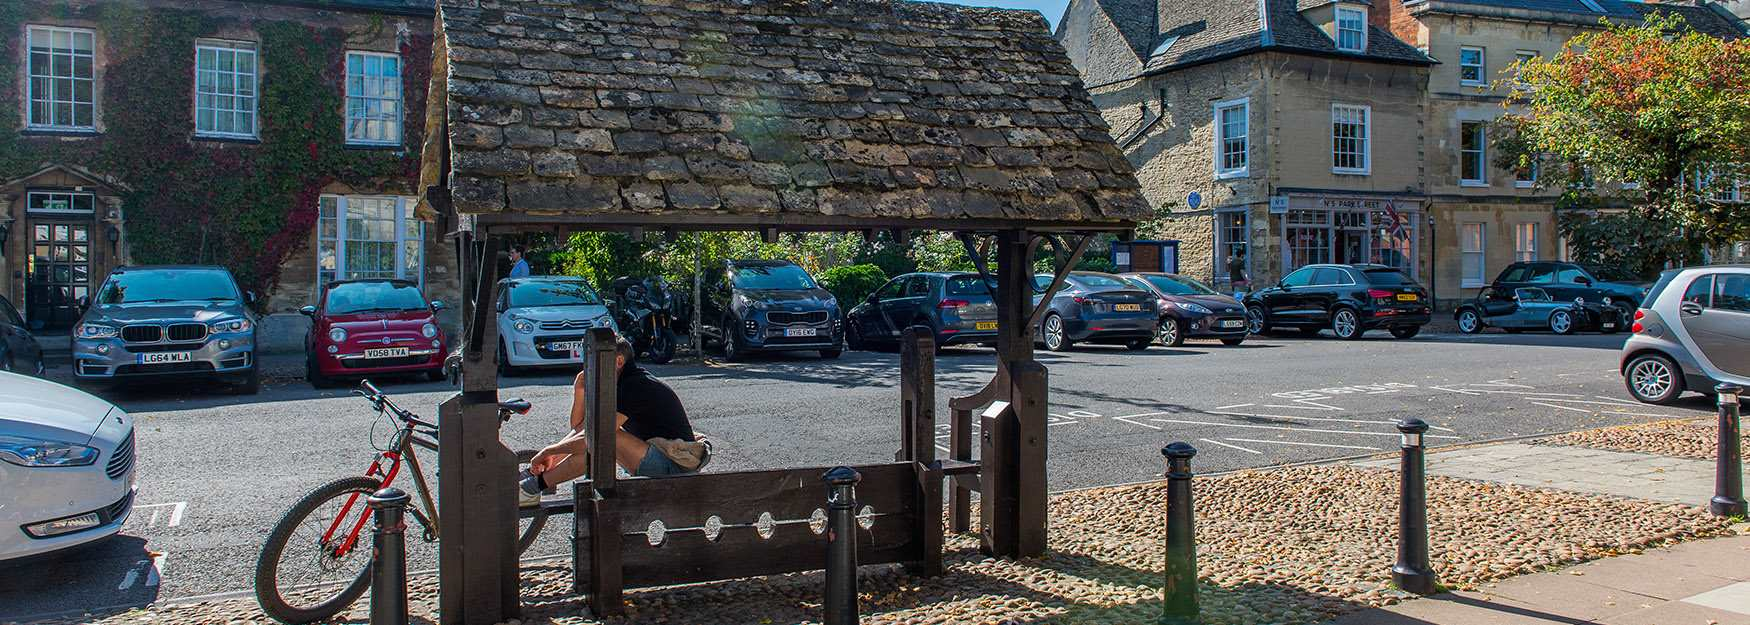 The ancient stocks in the centre of historic Woodstock (photo by Jay Alice Photographic)